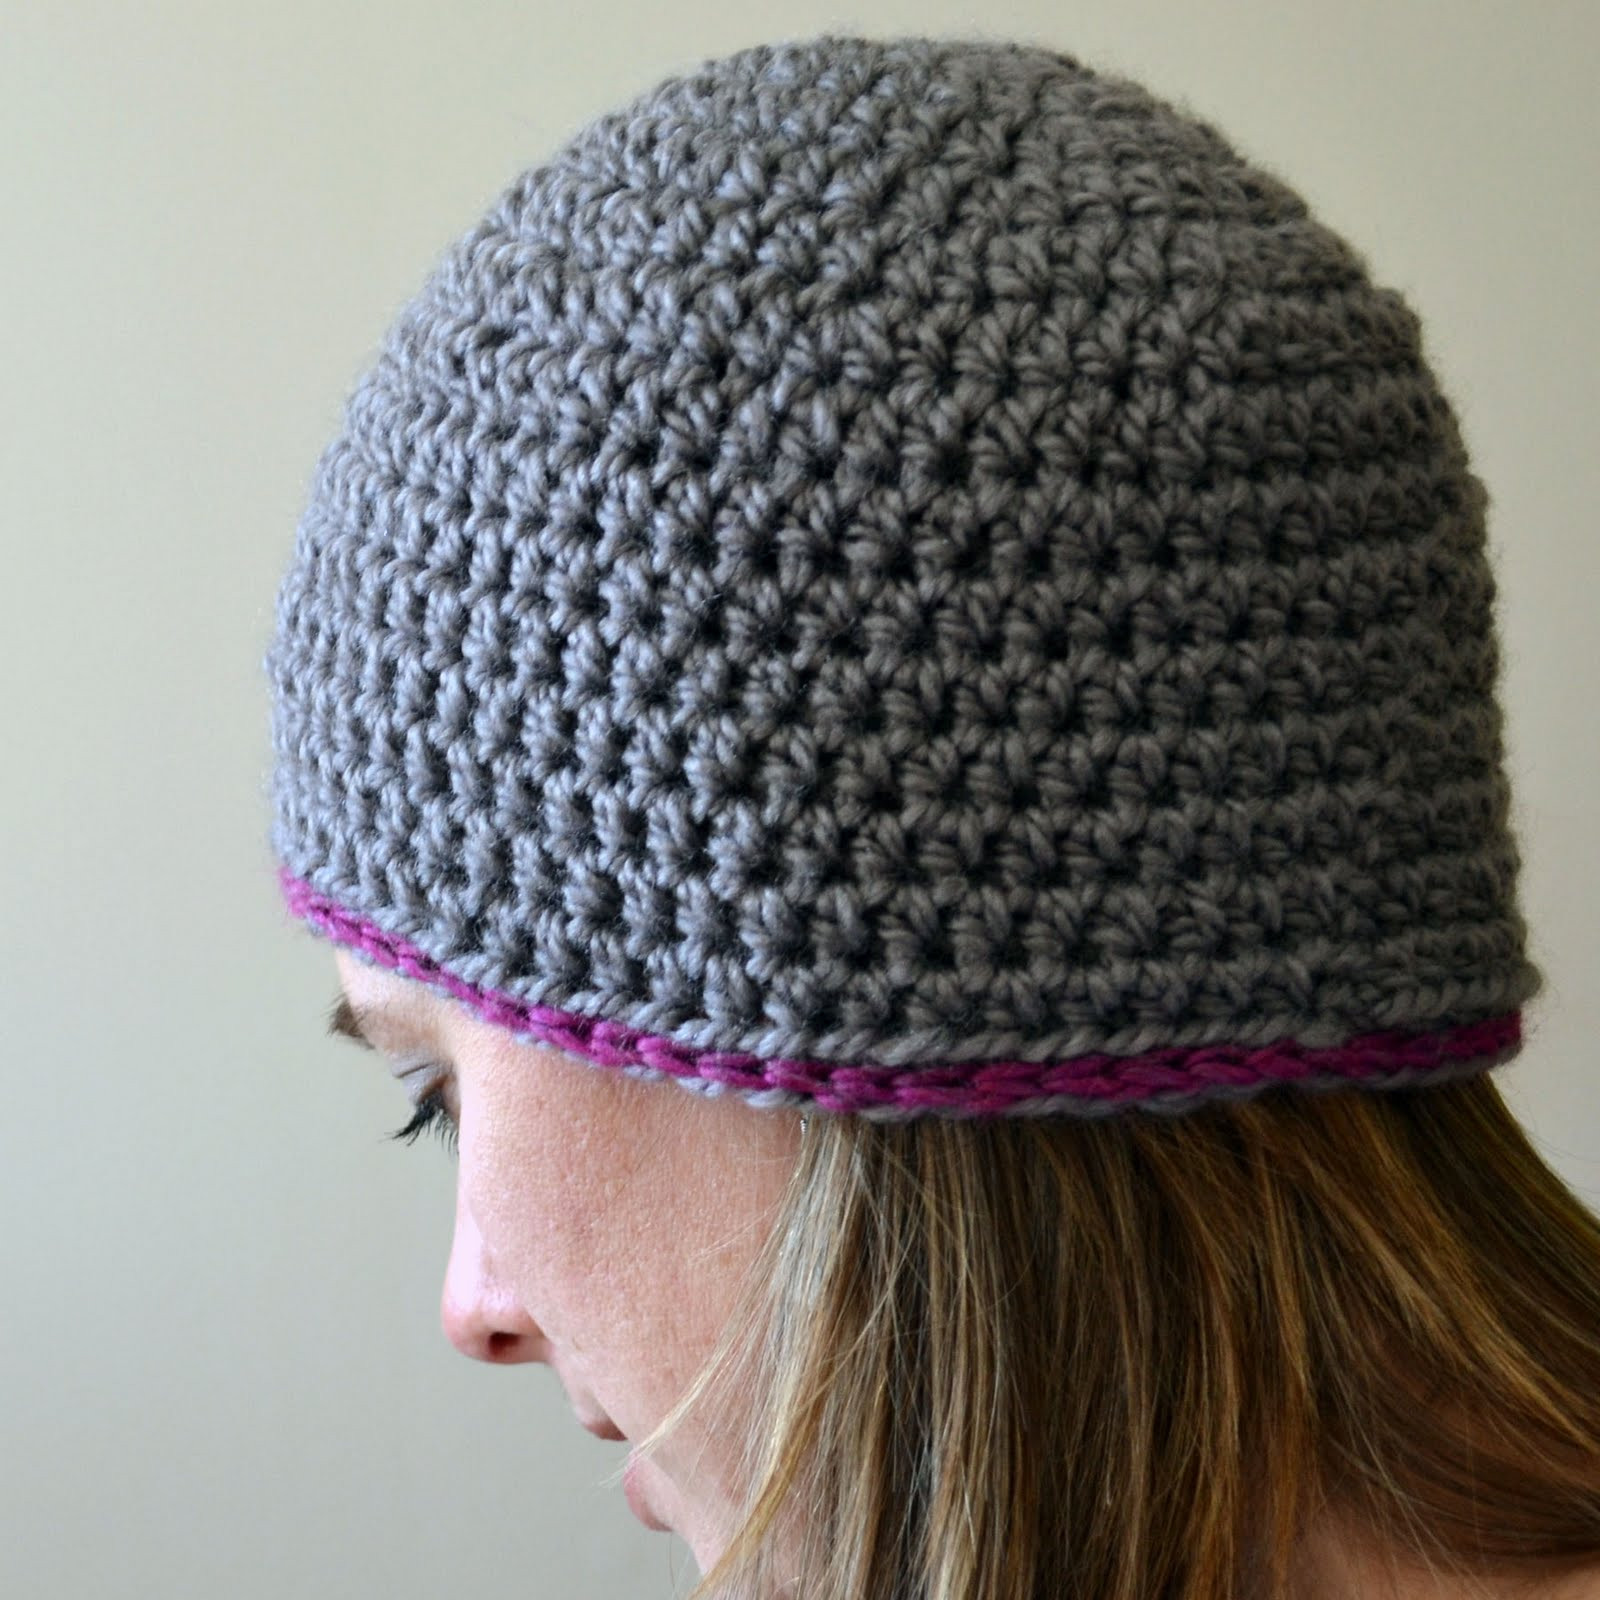 Beautiful Crochet Patterns for Hats Free Easy Crochet and Knit Crochet Adult Beanie Of Lovely 47 Pics Crochet Adult Beanie